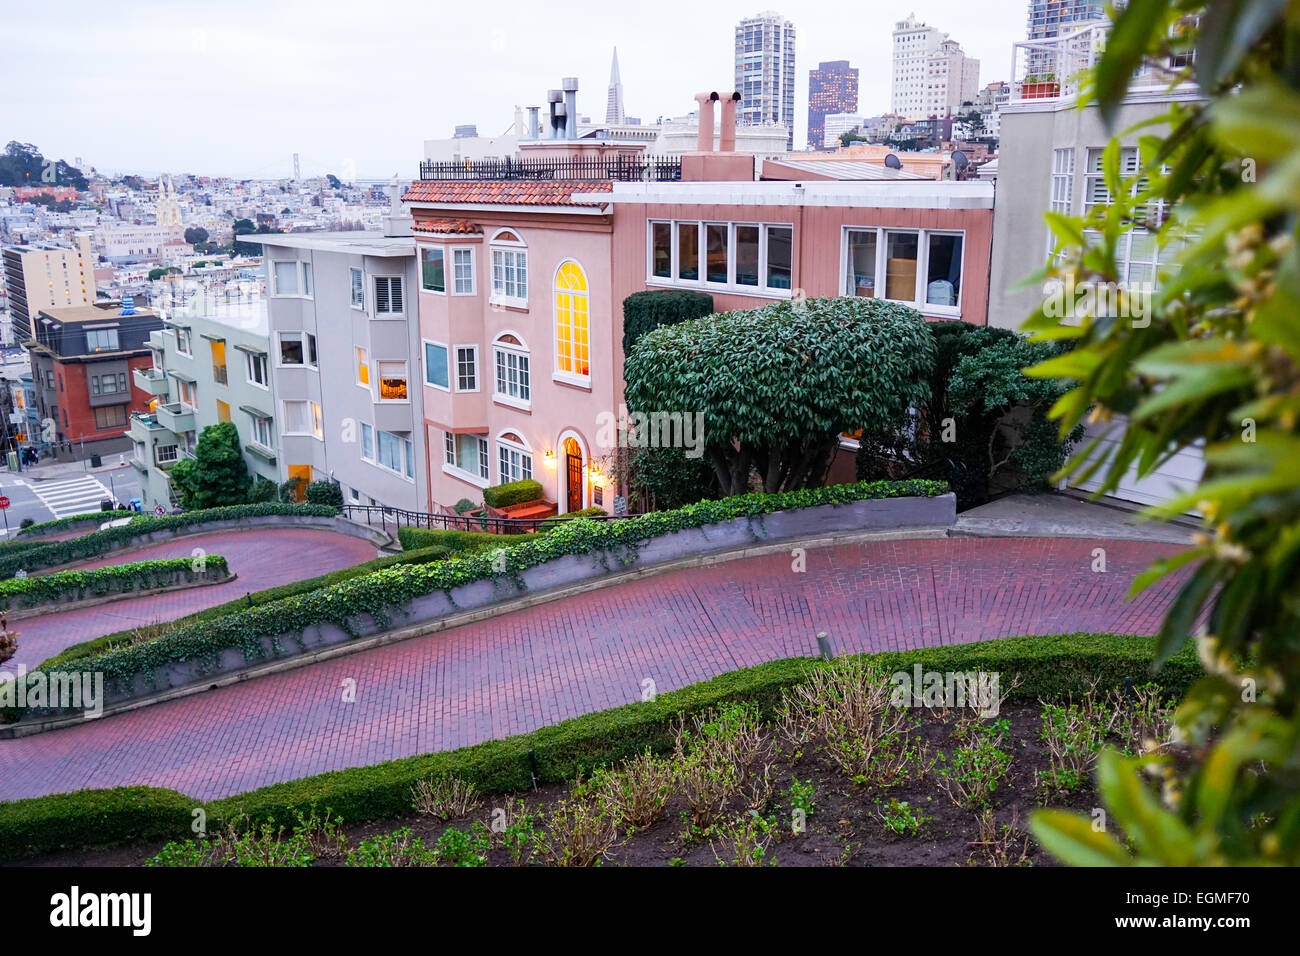 The crookedest street in the world, Lombard Street, San Francisco. - Stock Image